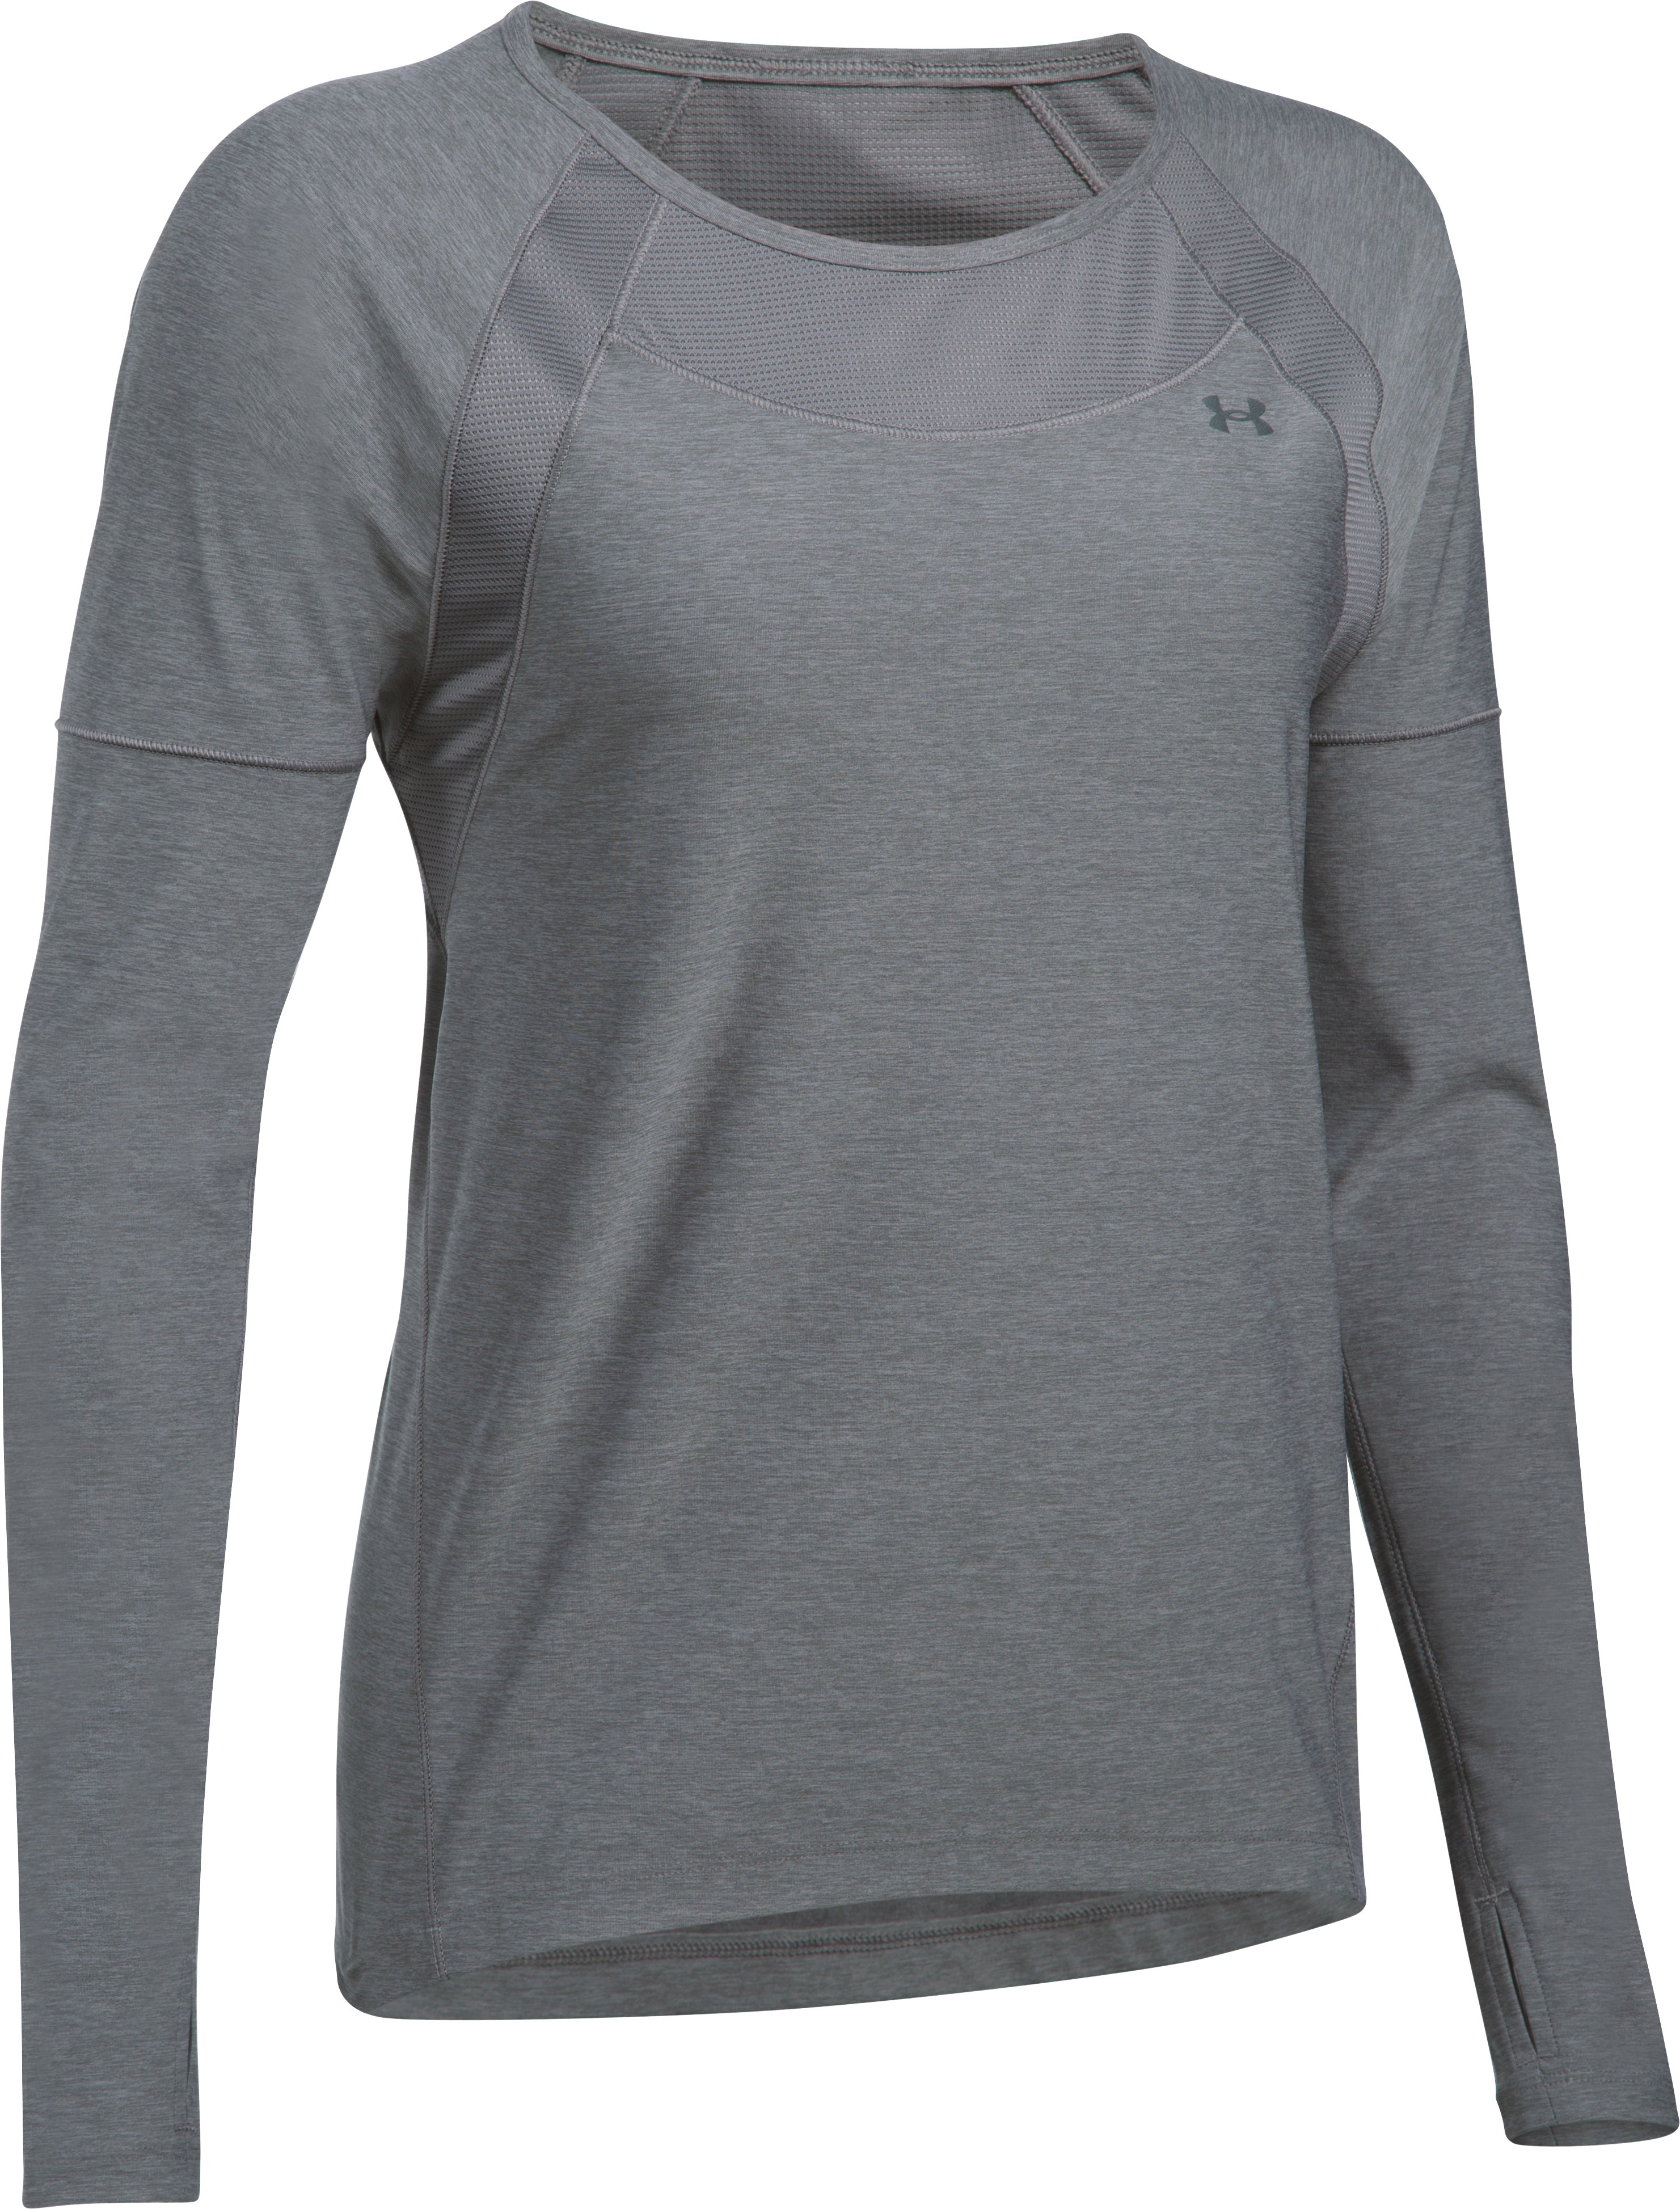 Women's UA Got Game Twist Long Sleeve, Graphite, undefined